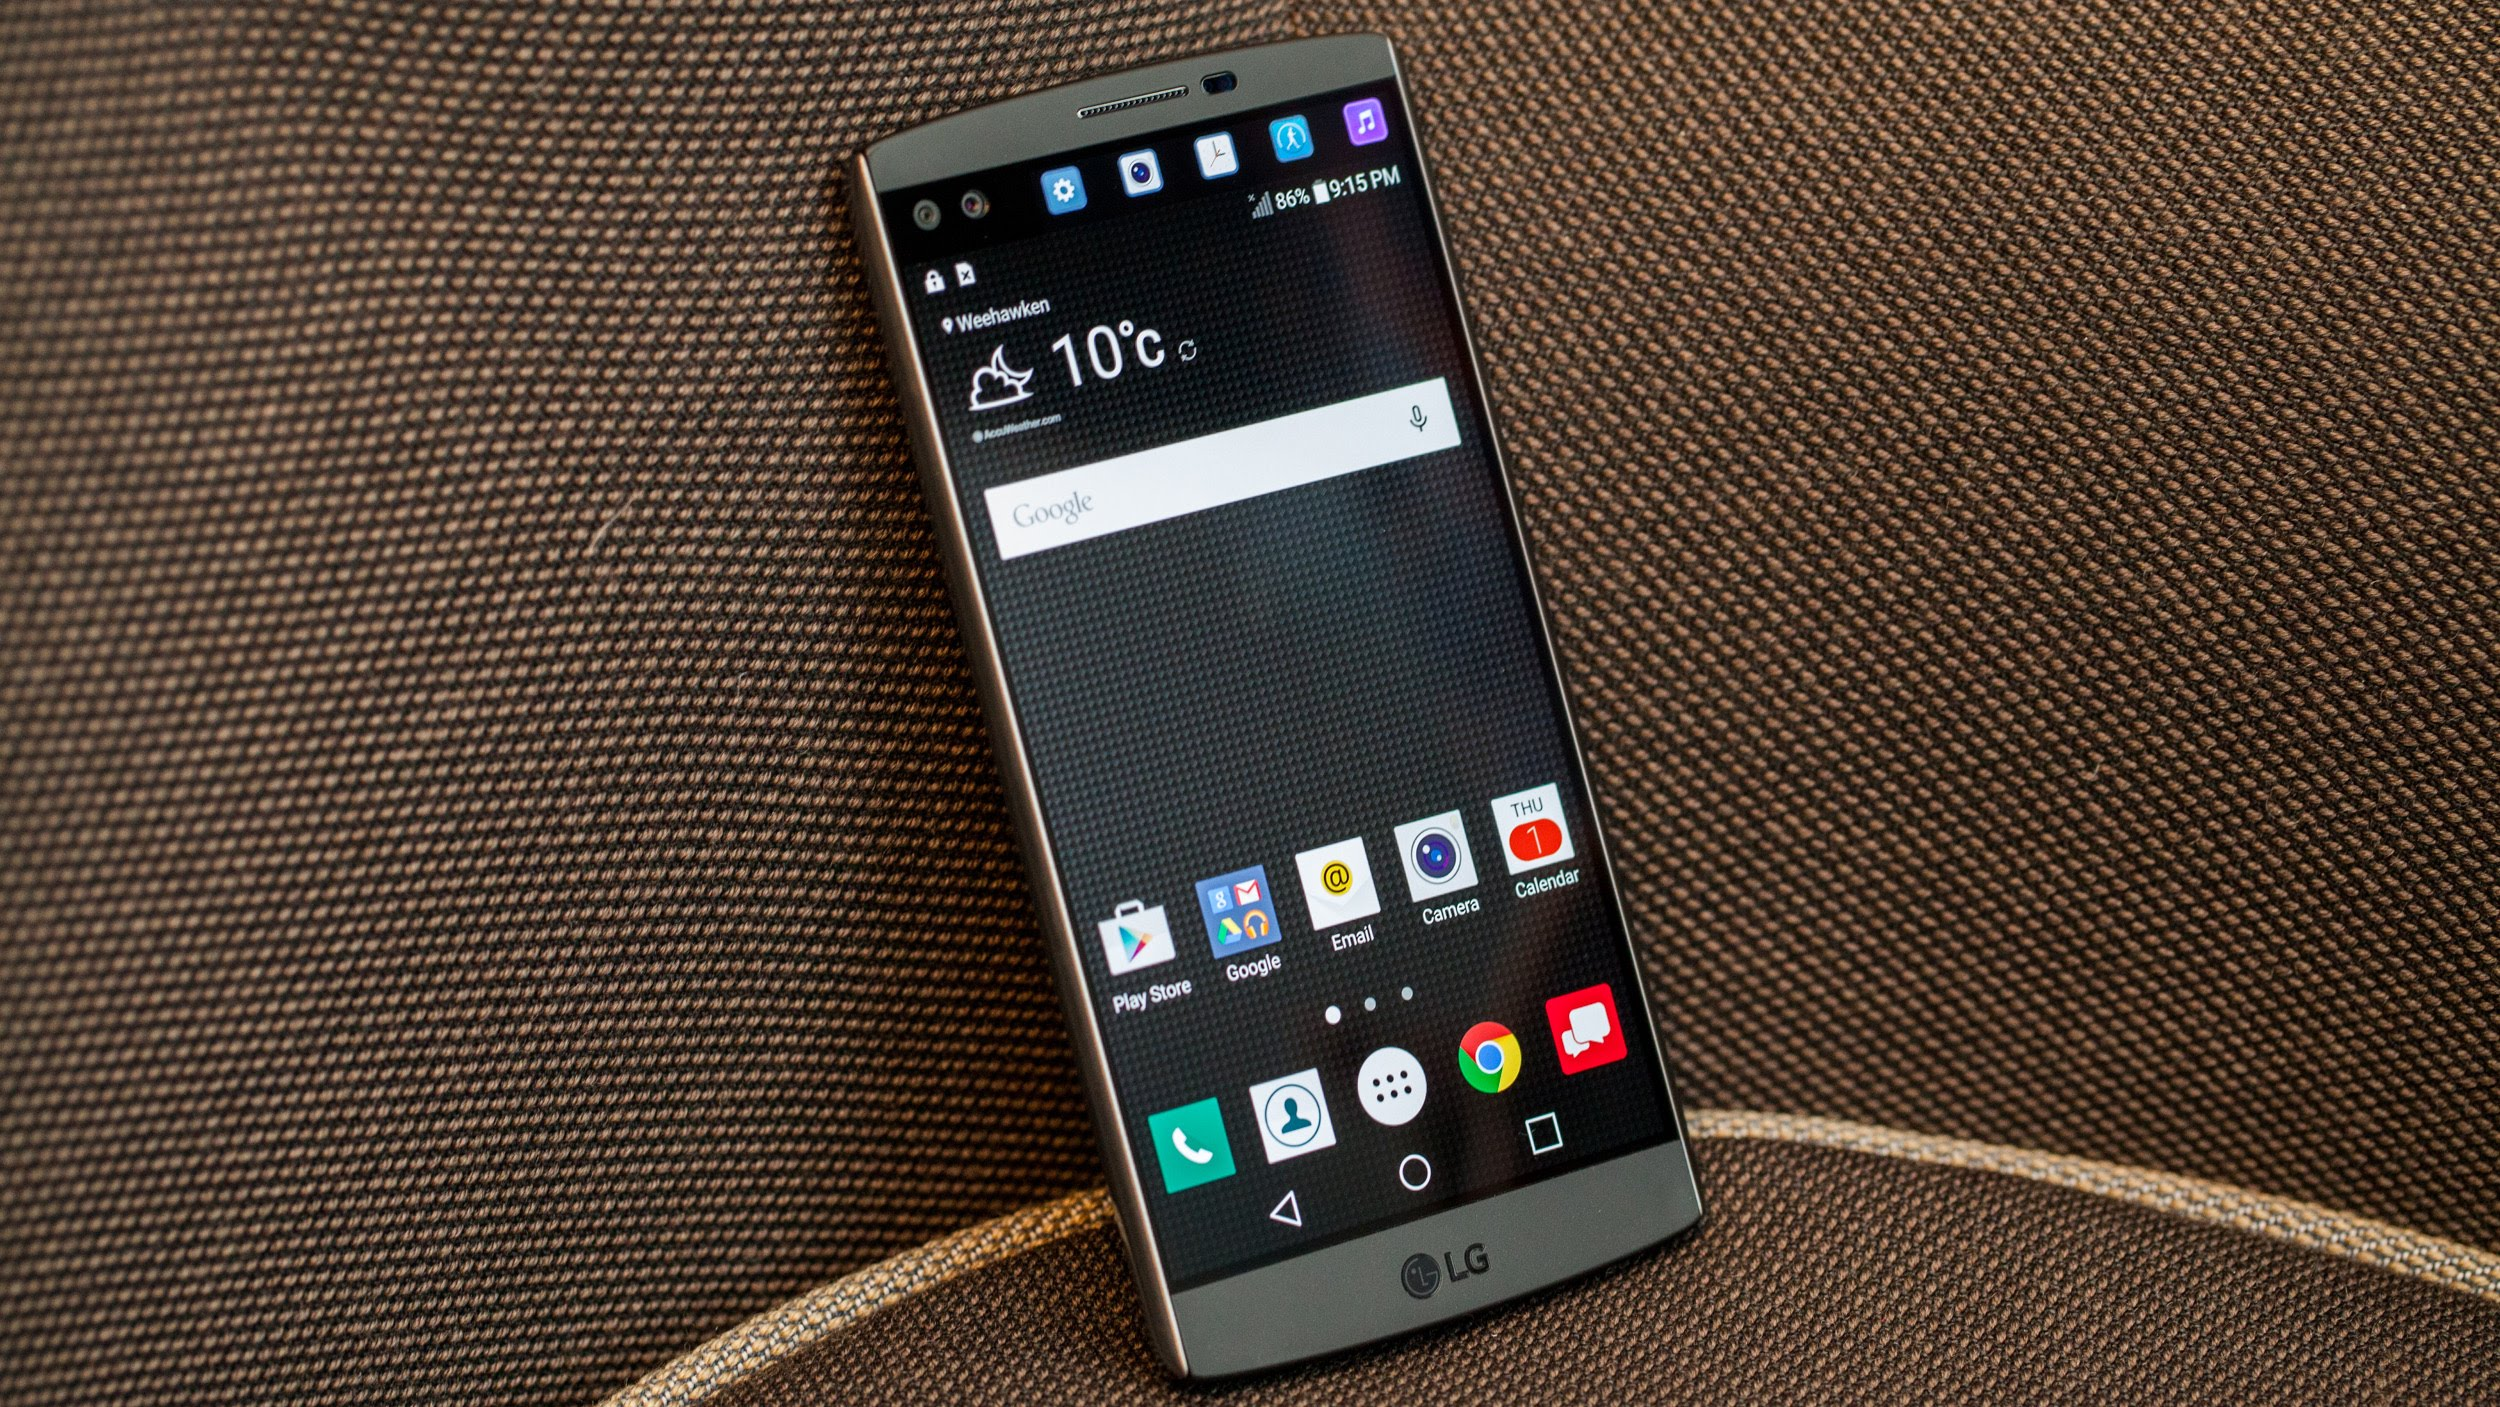 Lg V10 : T-Mobile sends Android 7.0